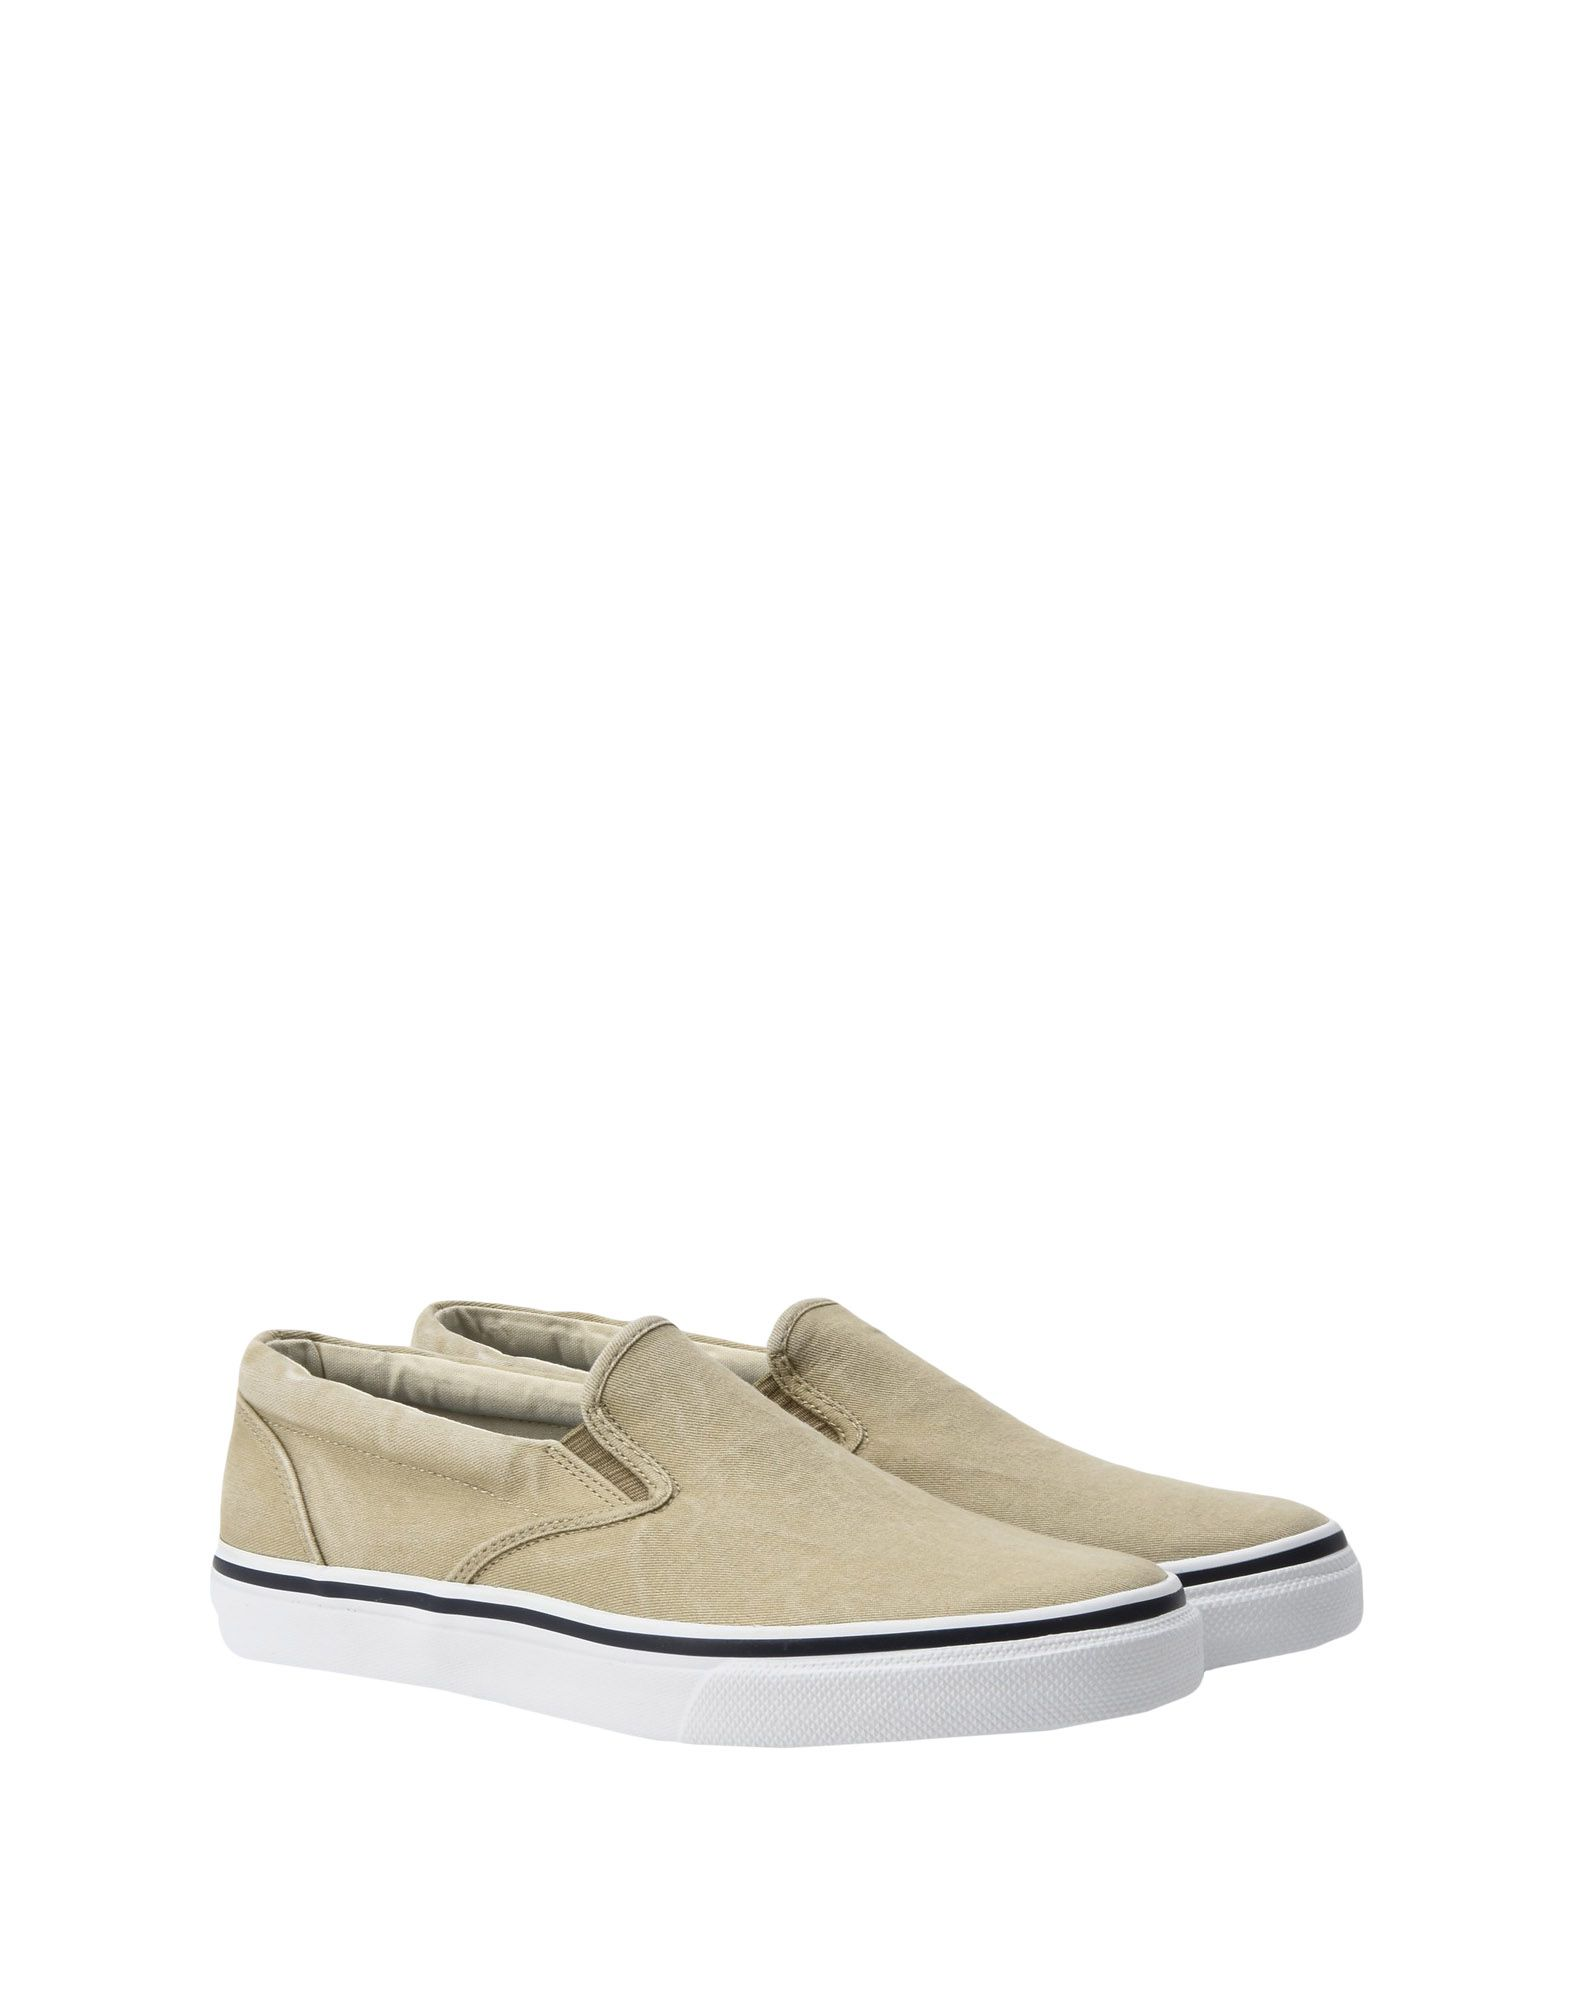 Sneakers Sperry Top-Sider Striper S/O - Homme - Sneakers Sperry Top-Sider sur